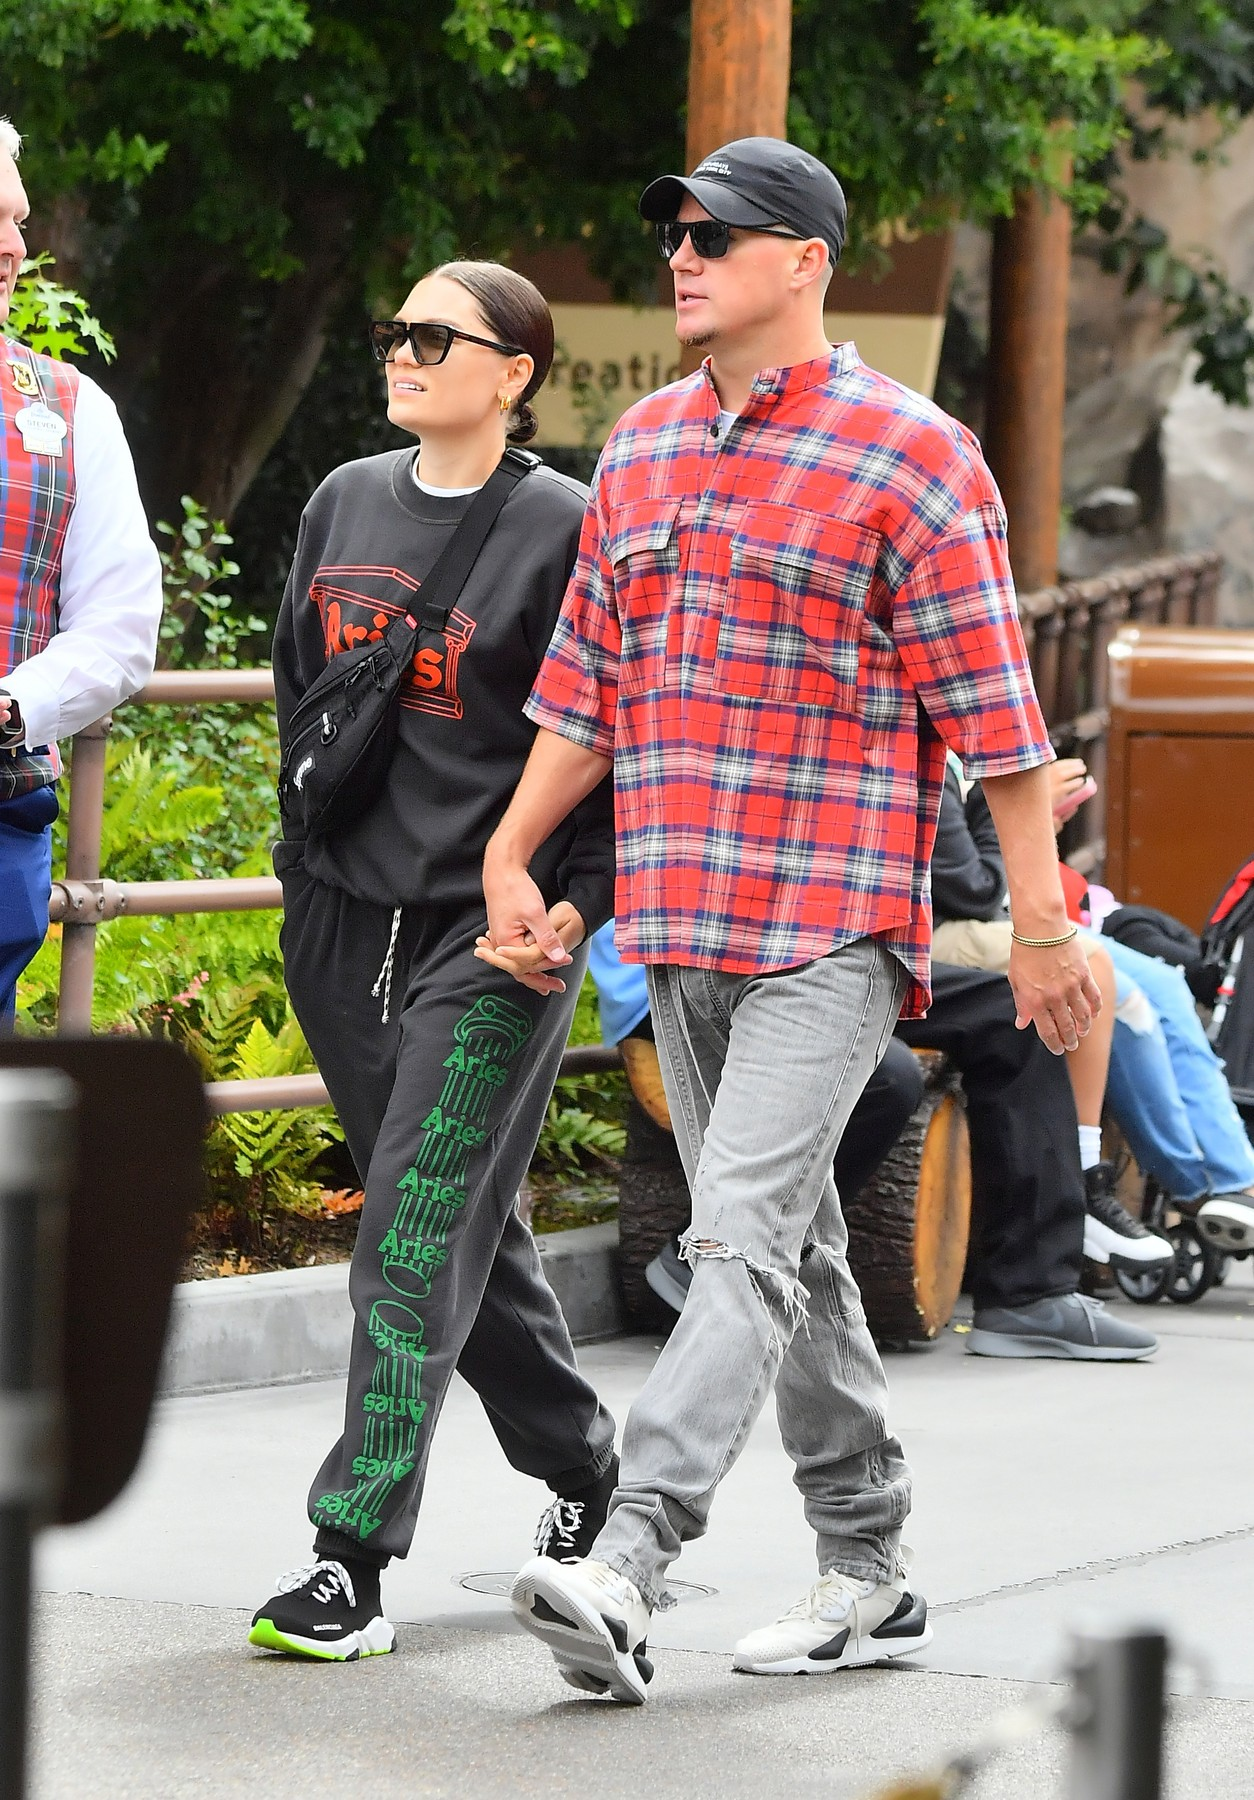 ** EXCLUSIVE PREMIUM RATES APPLY **   Channing Tatum and Jessie J look completely in love as they pack on endless PDA while on a date at the happiest place on earth, Disneyland. The happy couple, who were joined by a VIP tour guide as they spent the day at Disneyland. They were seen riding many of  the park's rides including the Matterhorn, Autopia and Space Mountain. They were seen constantly holding each other as they made their way through the park.  At one point Jesse was seen giving Channing's nose a playful honk.  They looked adorable as they rode the Autopia ride together. 15 May 2019, Image: 433811637, License: Rights-managed, Restrictions: World Rights, Model Release: no, Credit line: Marksman/ Snorlax / MEGA / The Mega Agency / Profimedia